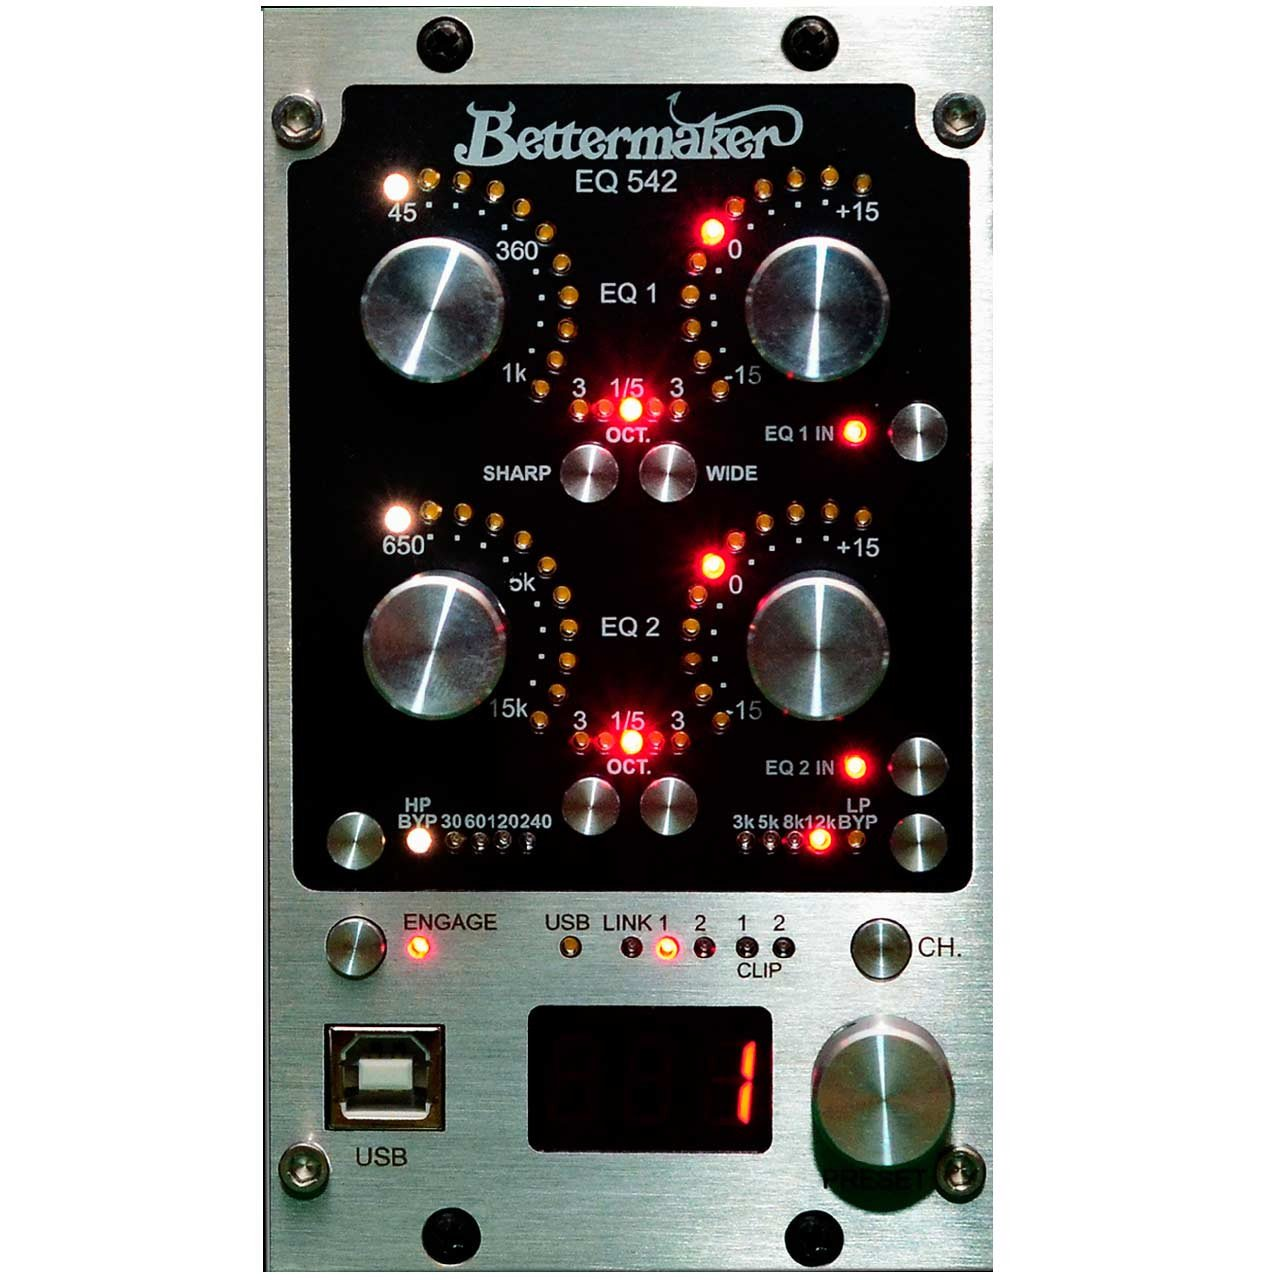 500 Series - Bettermaker EQ 542 - Stereo Analog Parametric Equaliser With Plugin Recall In 500 Format.